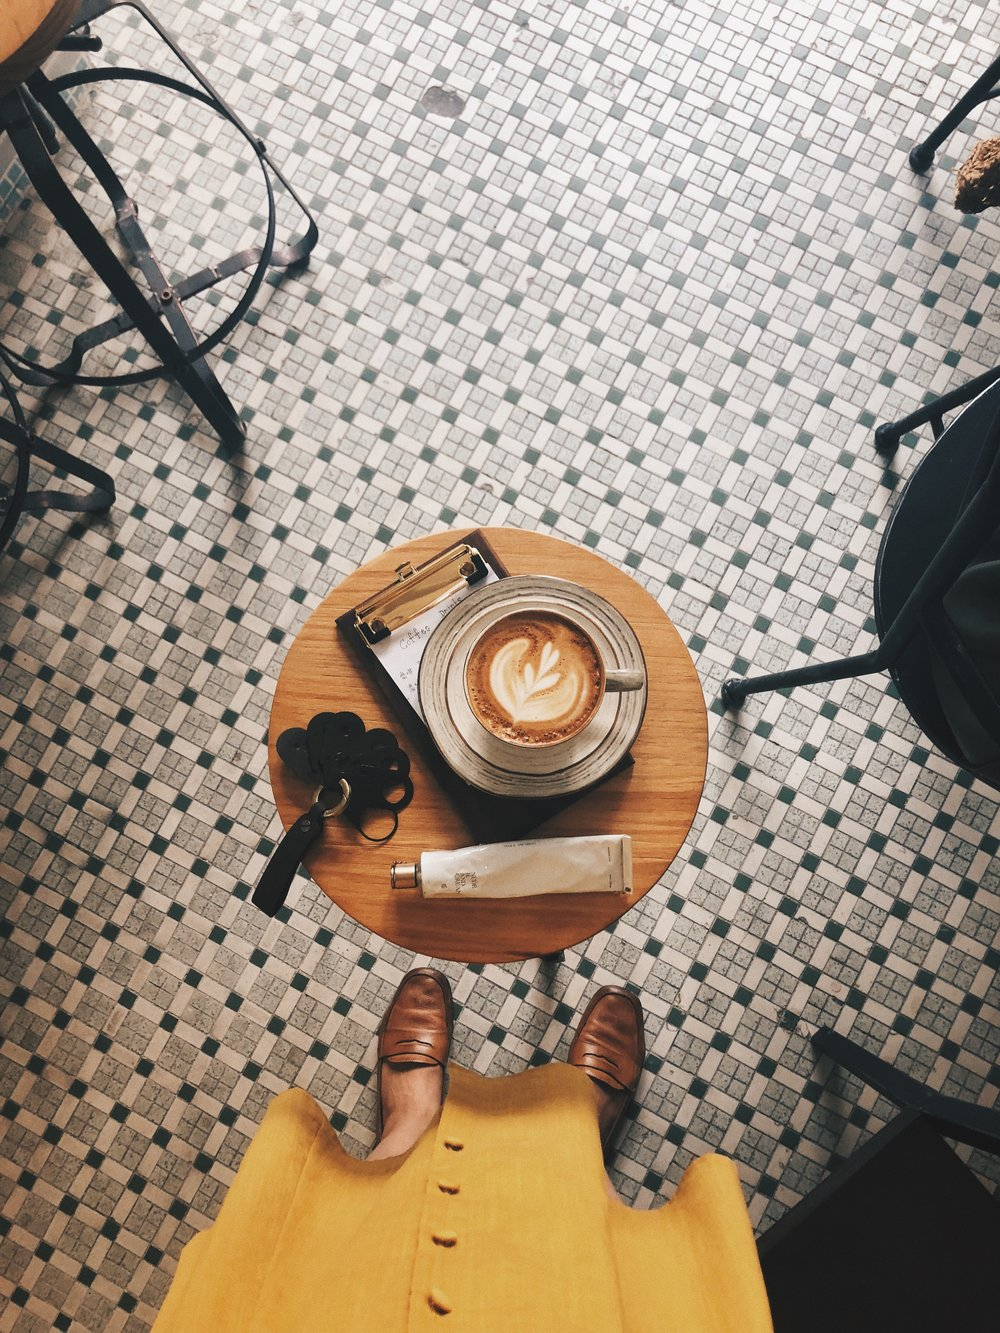 ><>< - COFFEE MATTERS